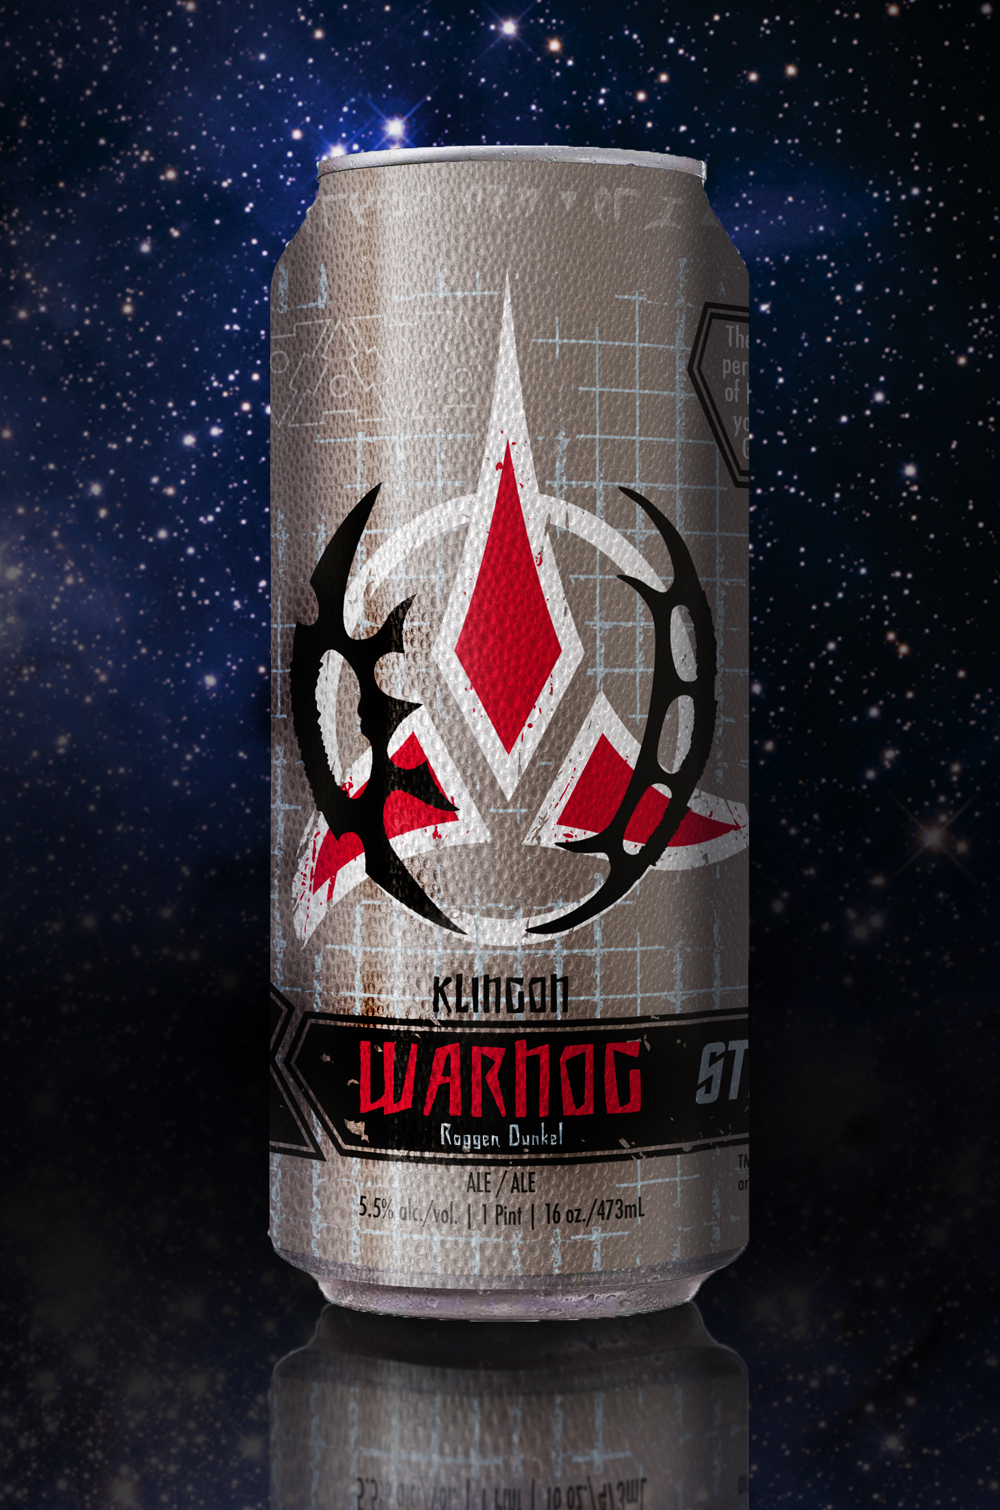 star-trek-branded-beer-klingon-warnog